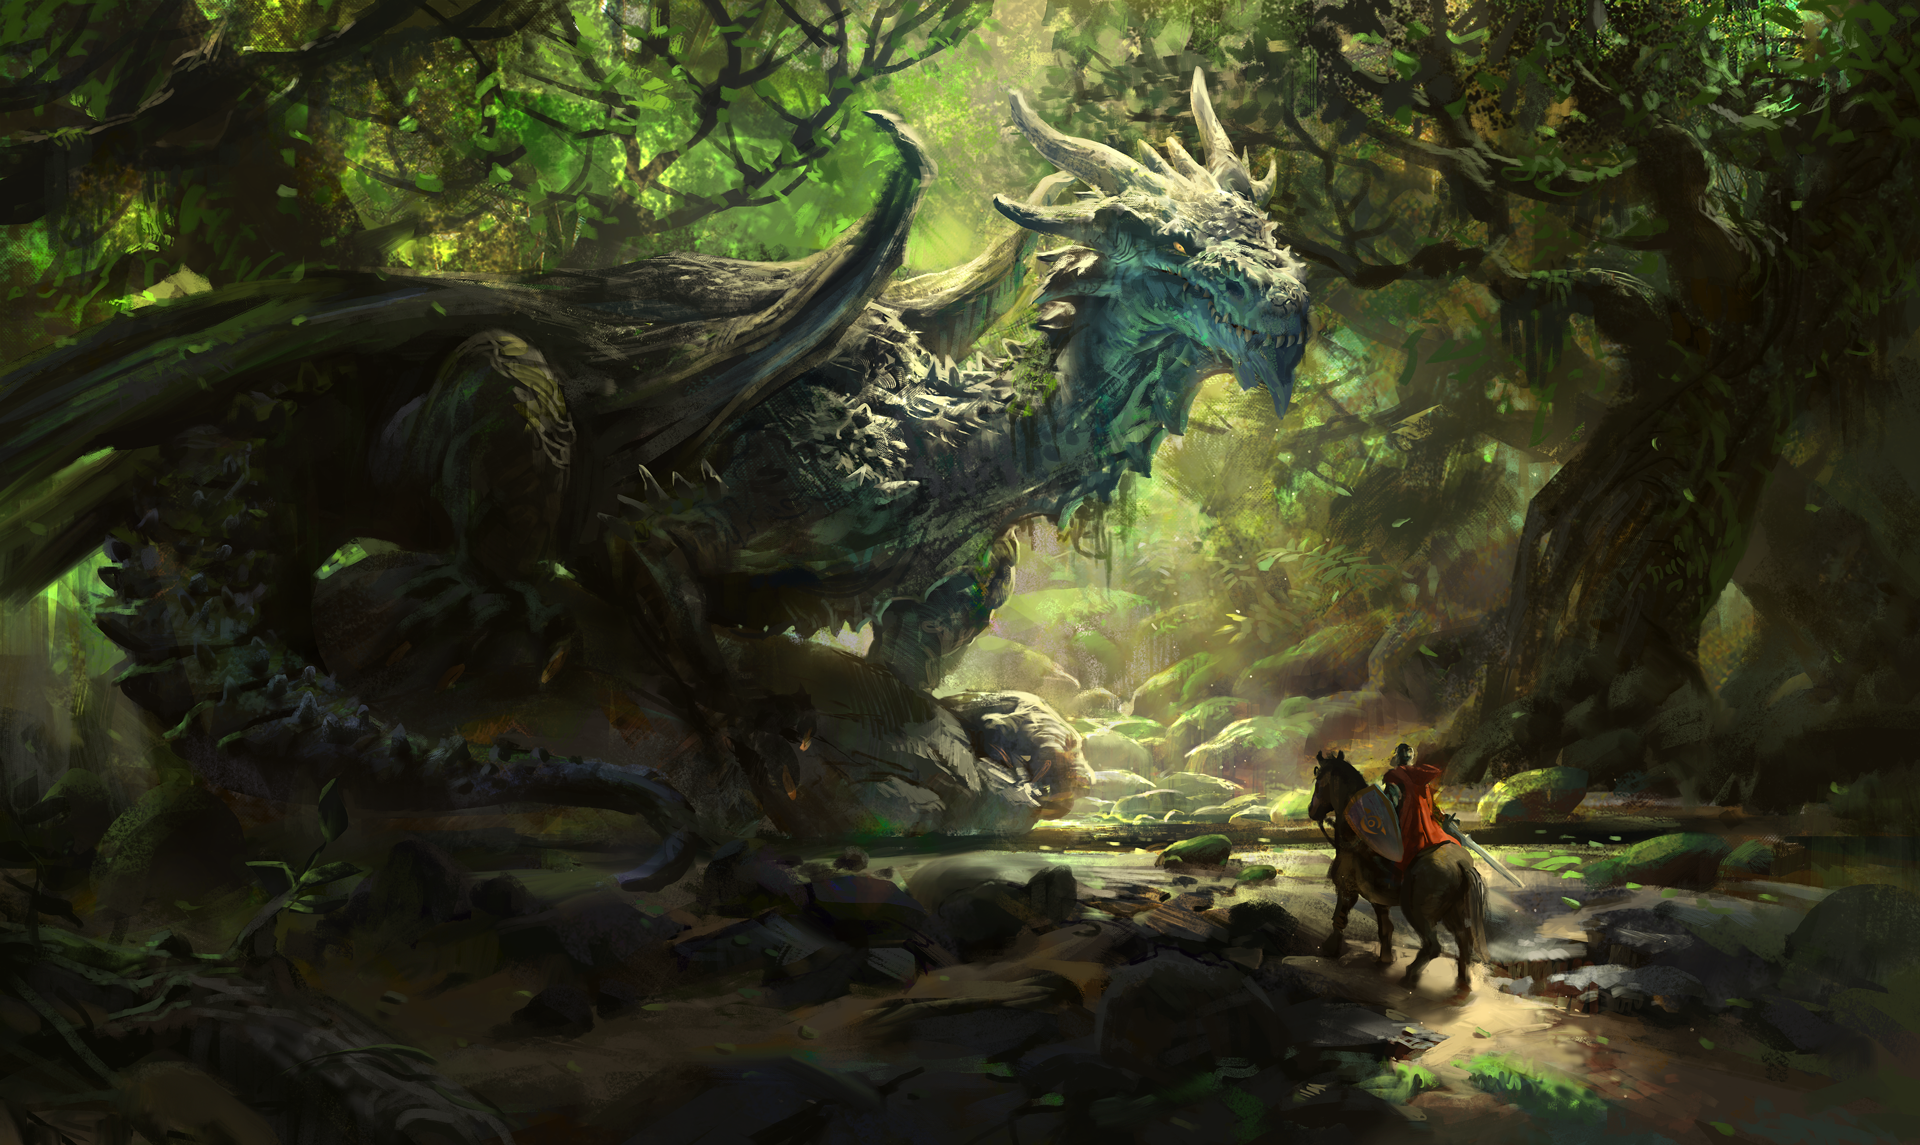 joseph__the_ancient__forest_dragon_by_mi